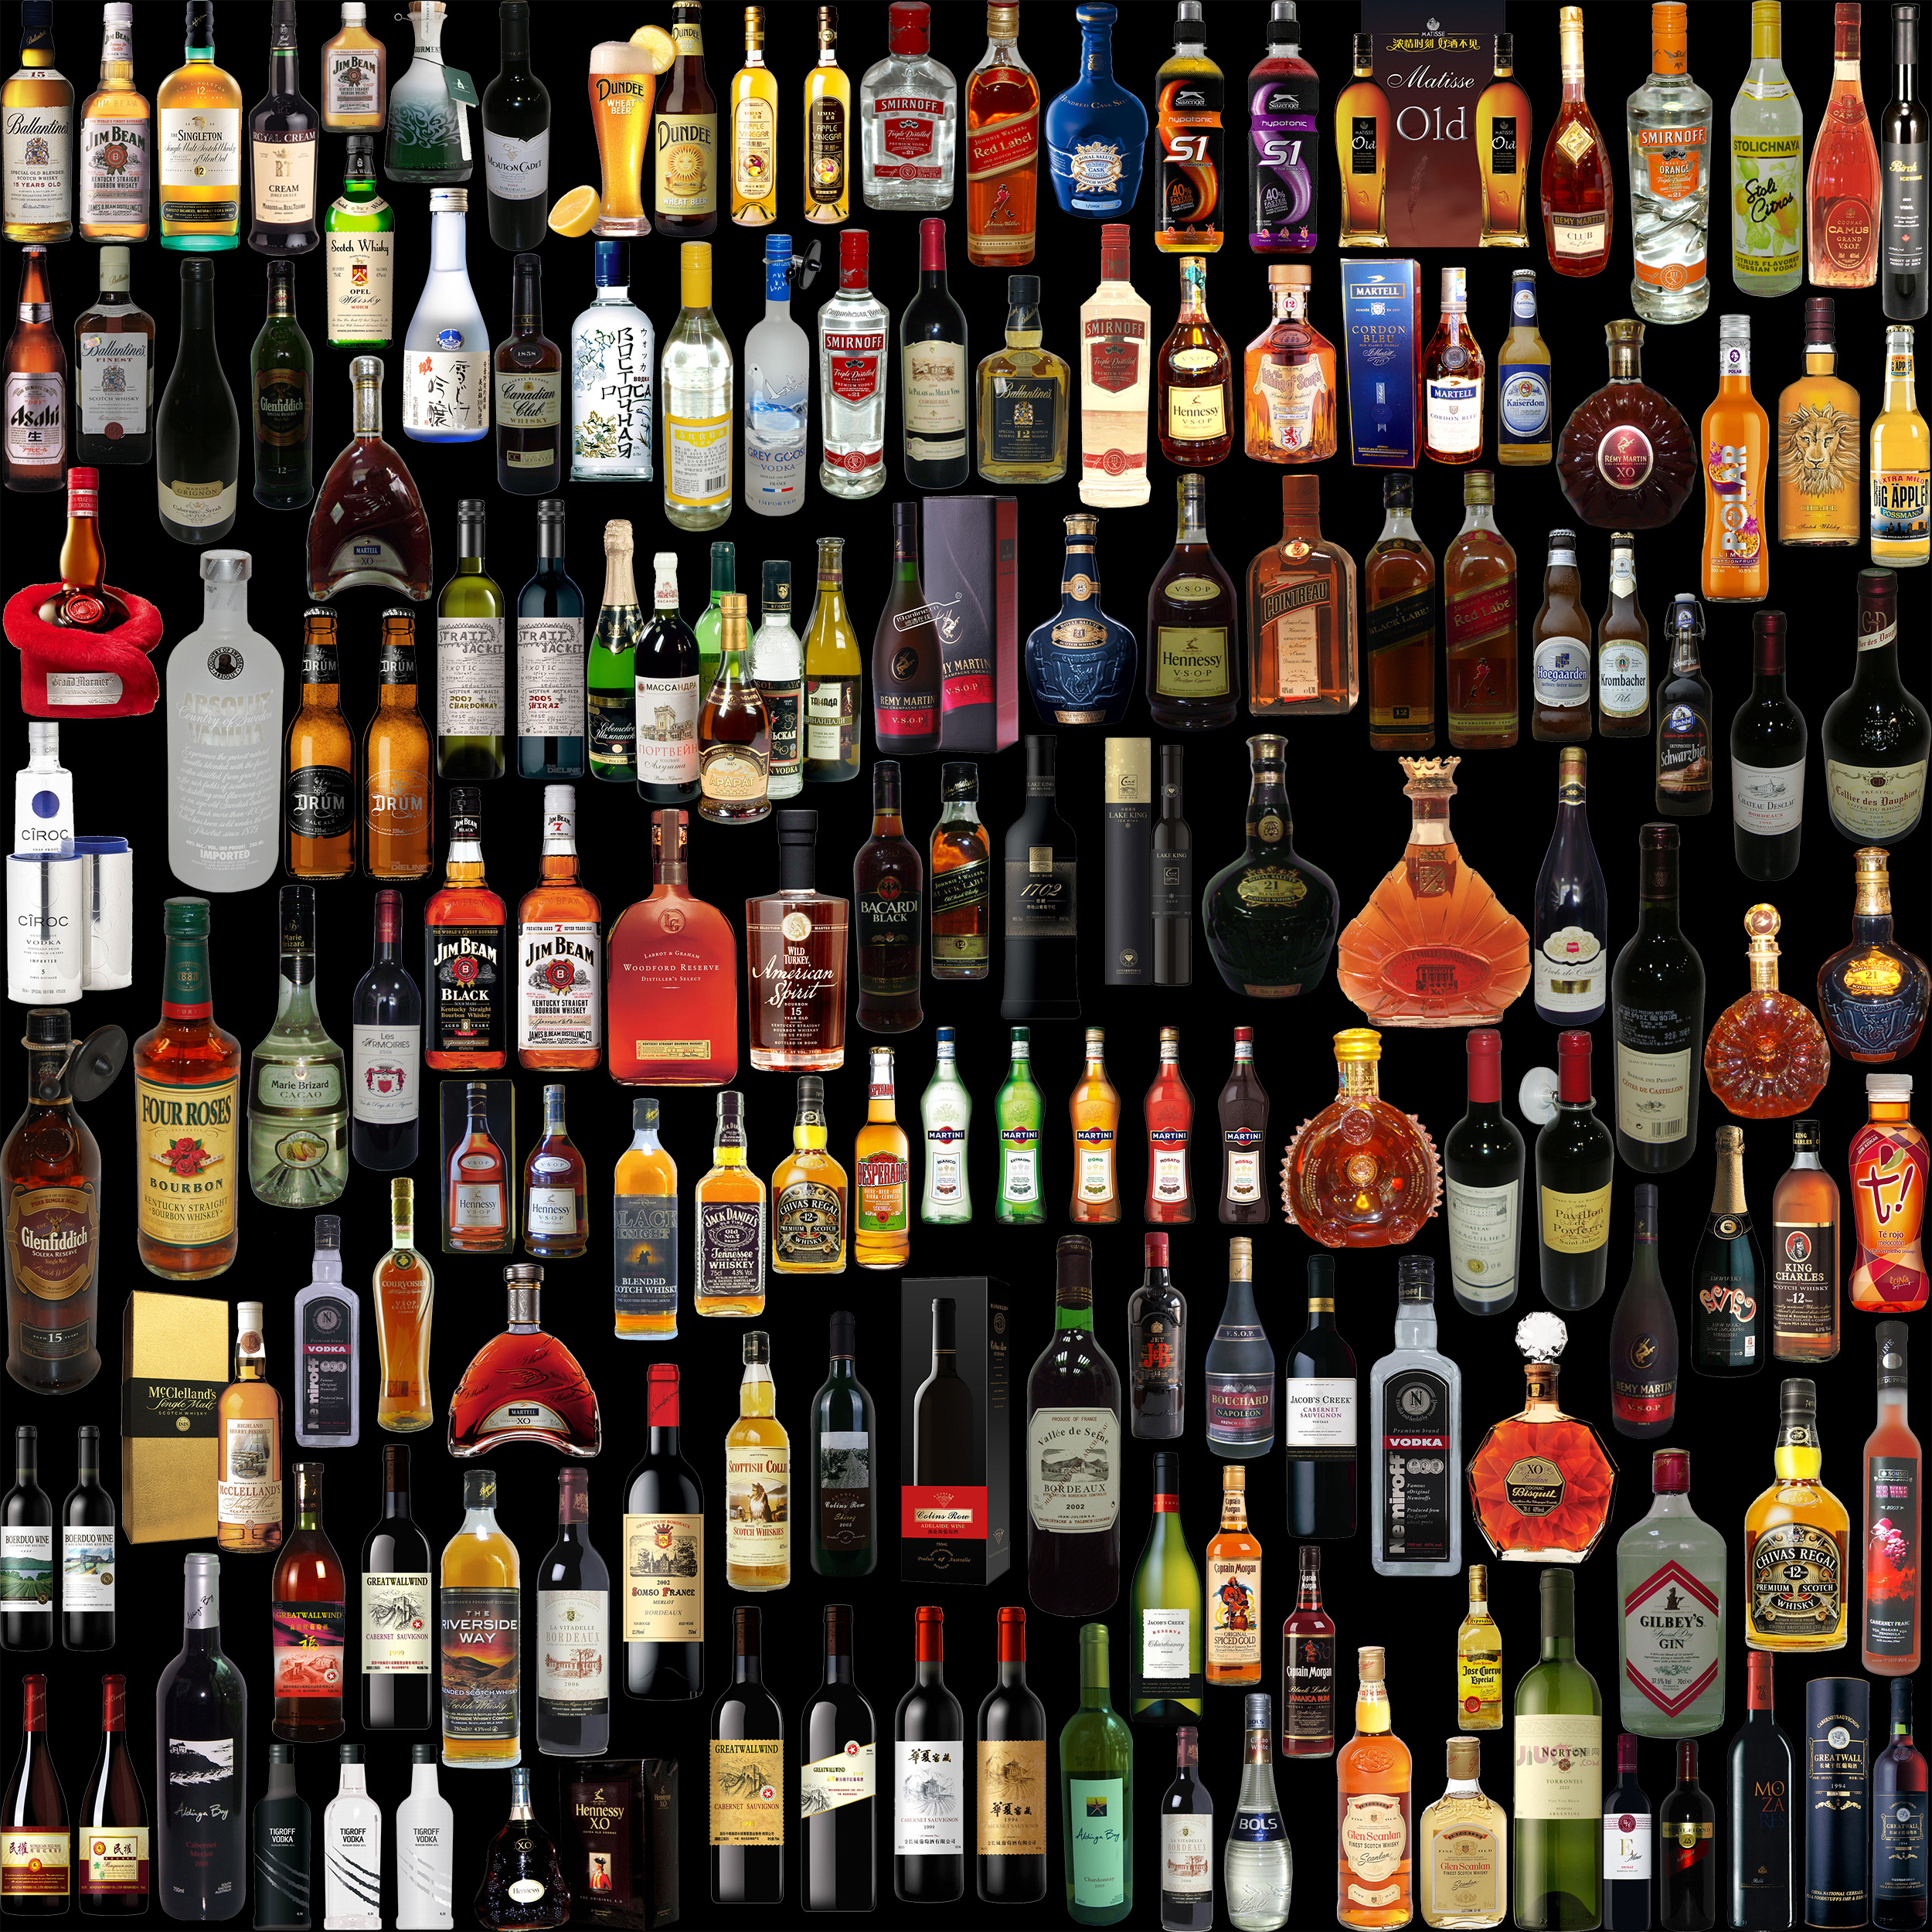 Lot of drinks photo